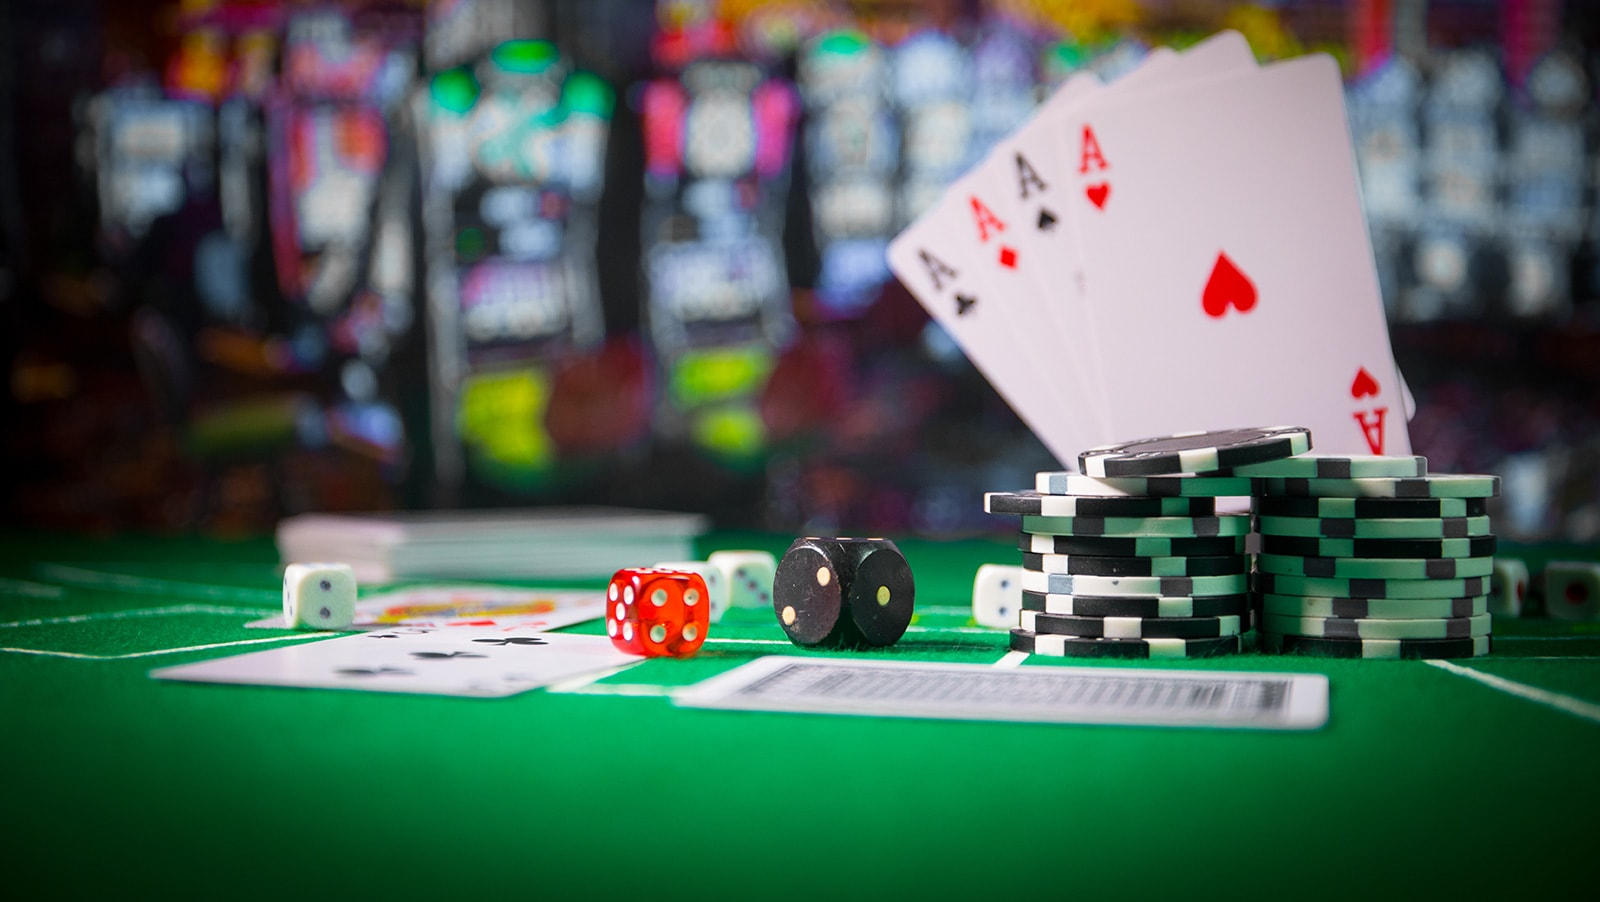 Online Casinos KYC Along With AML In 2020 - The Definitive Guide